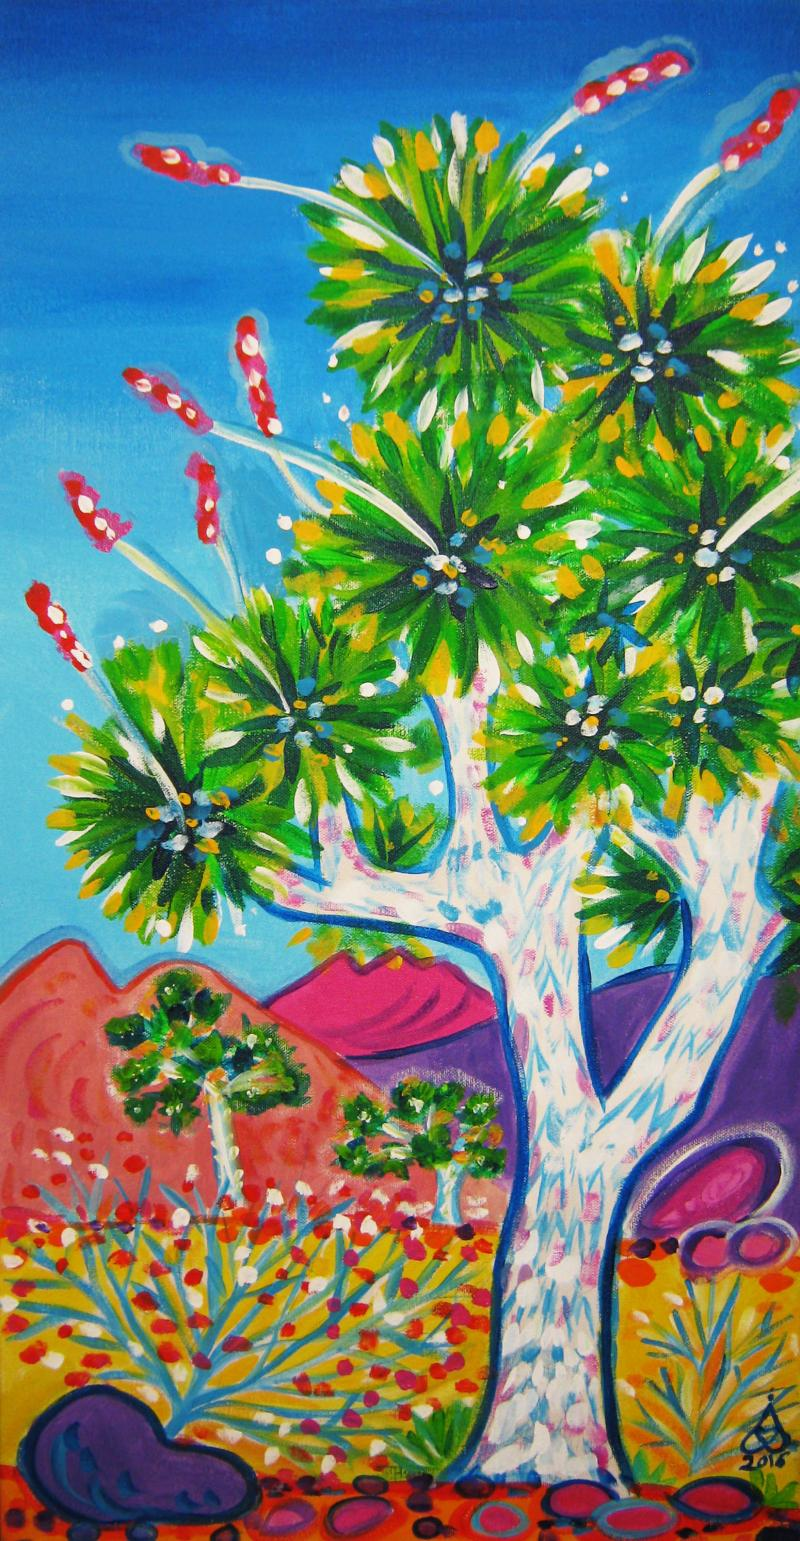 Rachel Houseman, Joshua Tree, ColorScapes, Desert Plants, Colorful Art